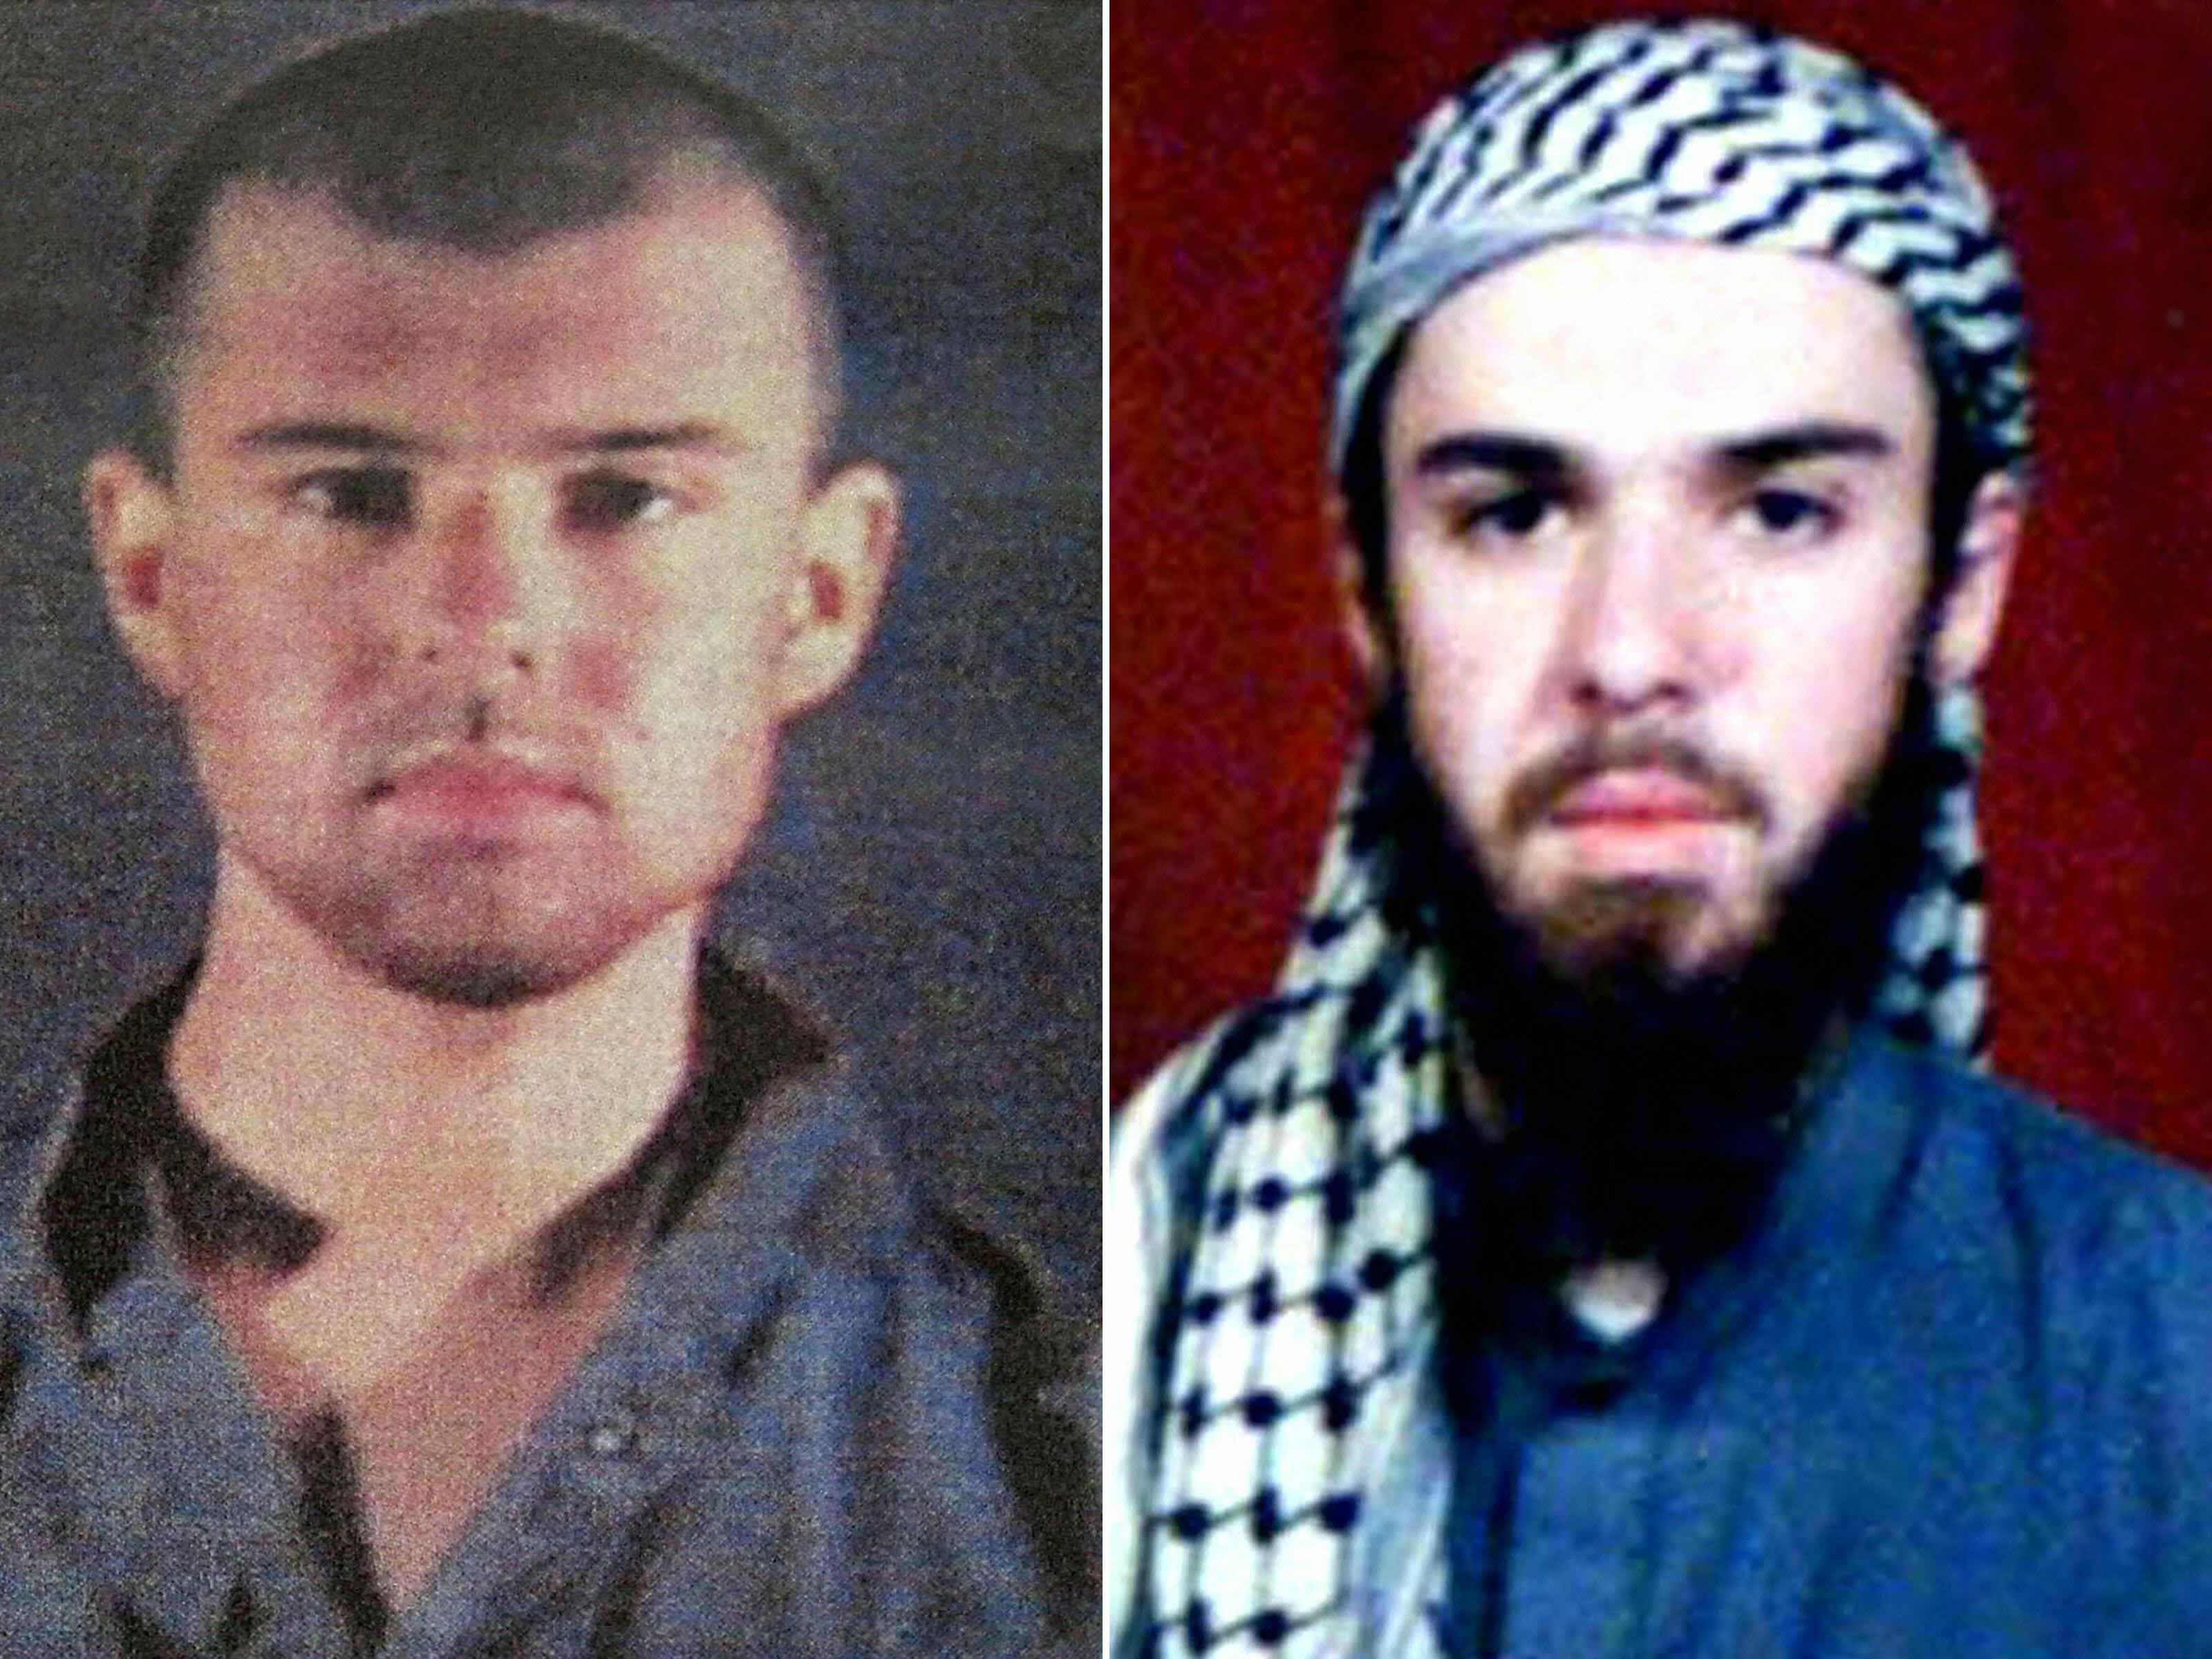 "This combination of pictures created on April 17, 2019 shows at left a police file photo made available February 6, 2002 of the ""American Taliban"" John Walker Lindh and at right a February 11, 2002 photograph of him as seen from the records of the Arabia Hassani Kalan Surani Bannu madrassa (religious school) in Pakistan's northwestern city of Bannu. - John Walker Lindh, an American captured with the Taliban in November 2001 just weeks after the US launched the war in Afghanistan, is to be released in May 2019 after 17 years in prison."